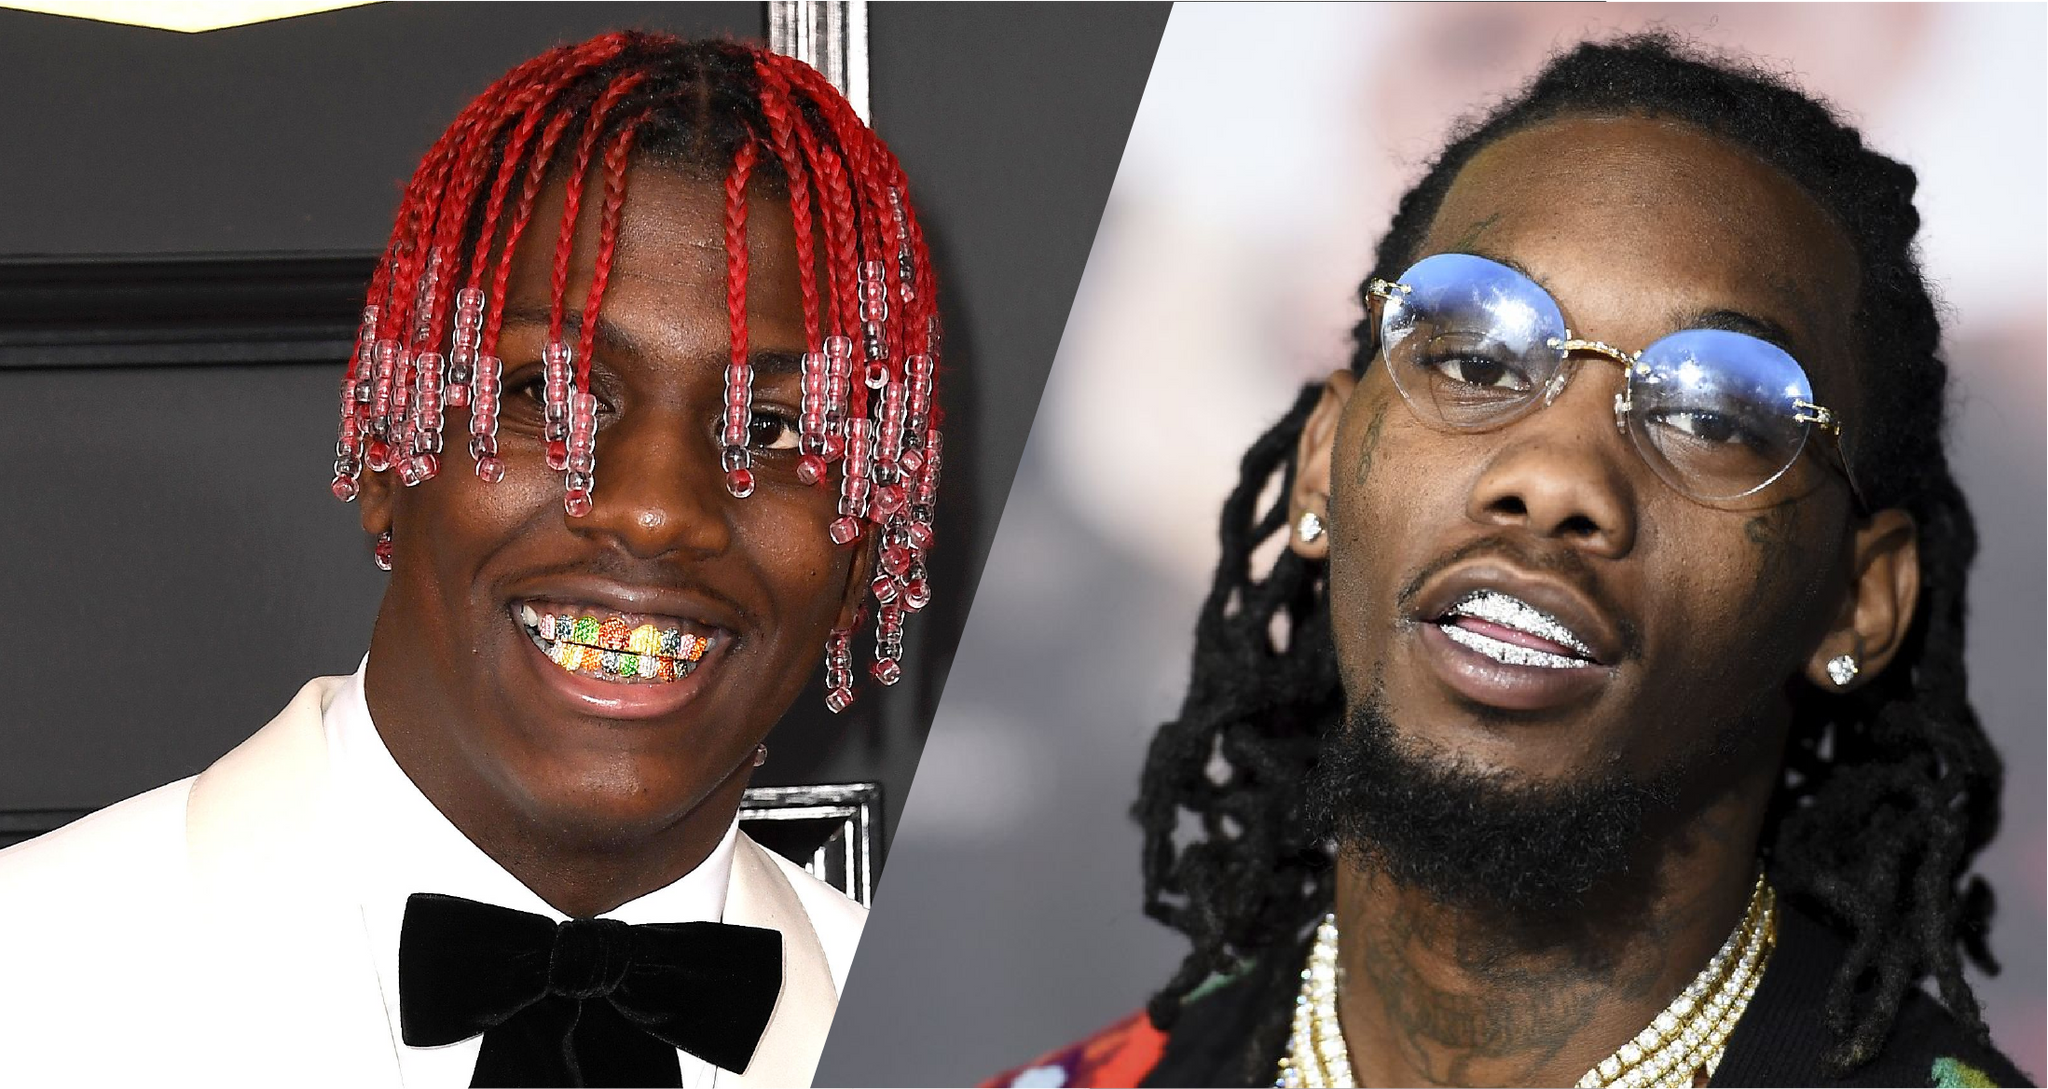 Lil Yachty & Offset Buys Out Theater For Kids To Watch Black Panther!